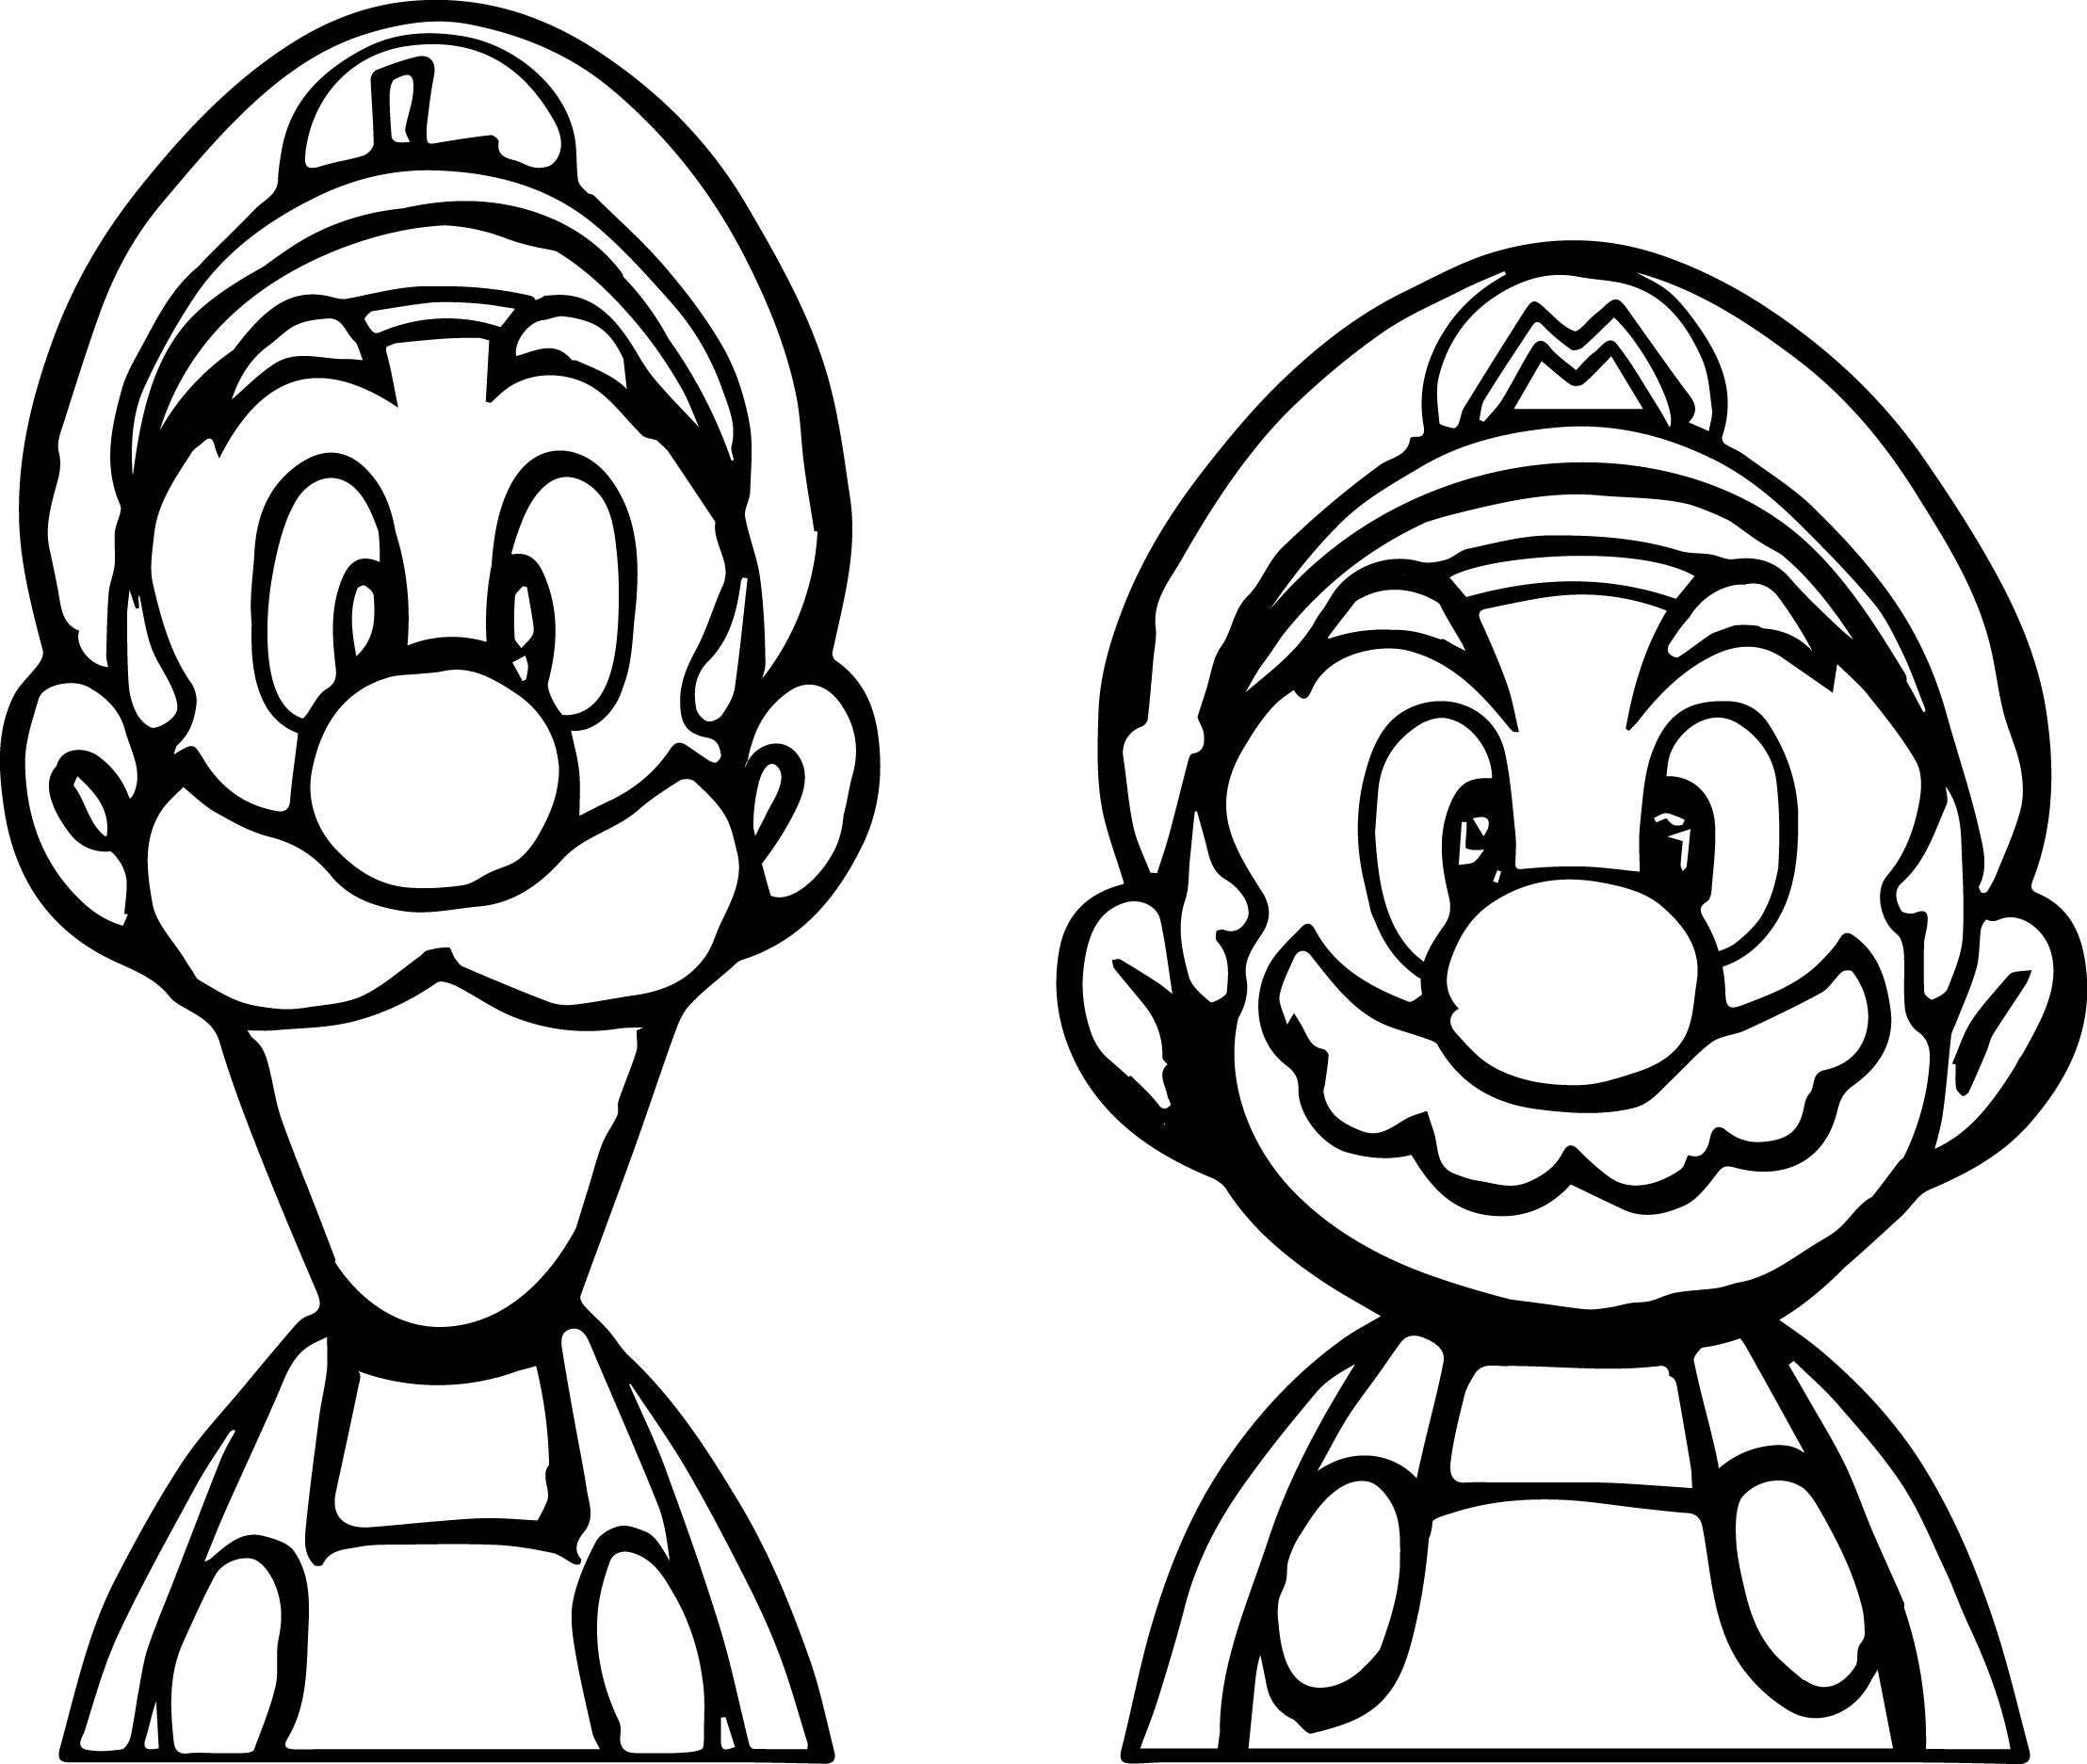 Super Mario Coloring Page Luxury Photos Mario Luigi Coloring Pages